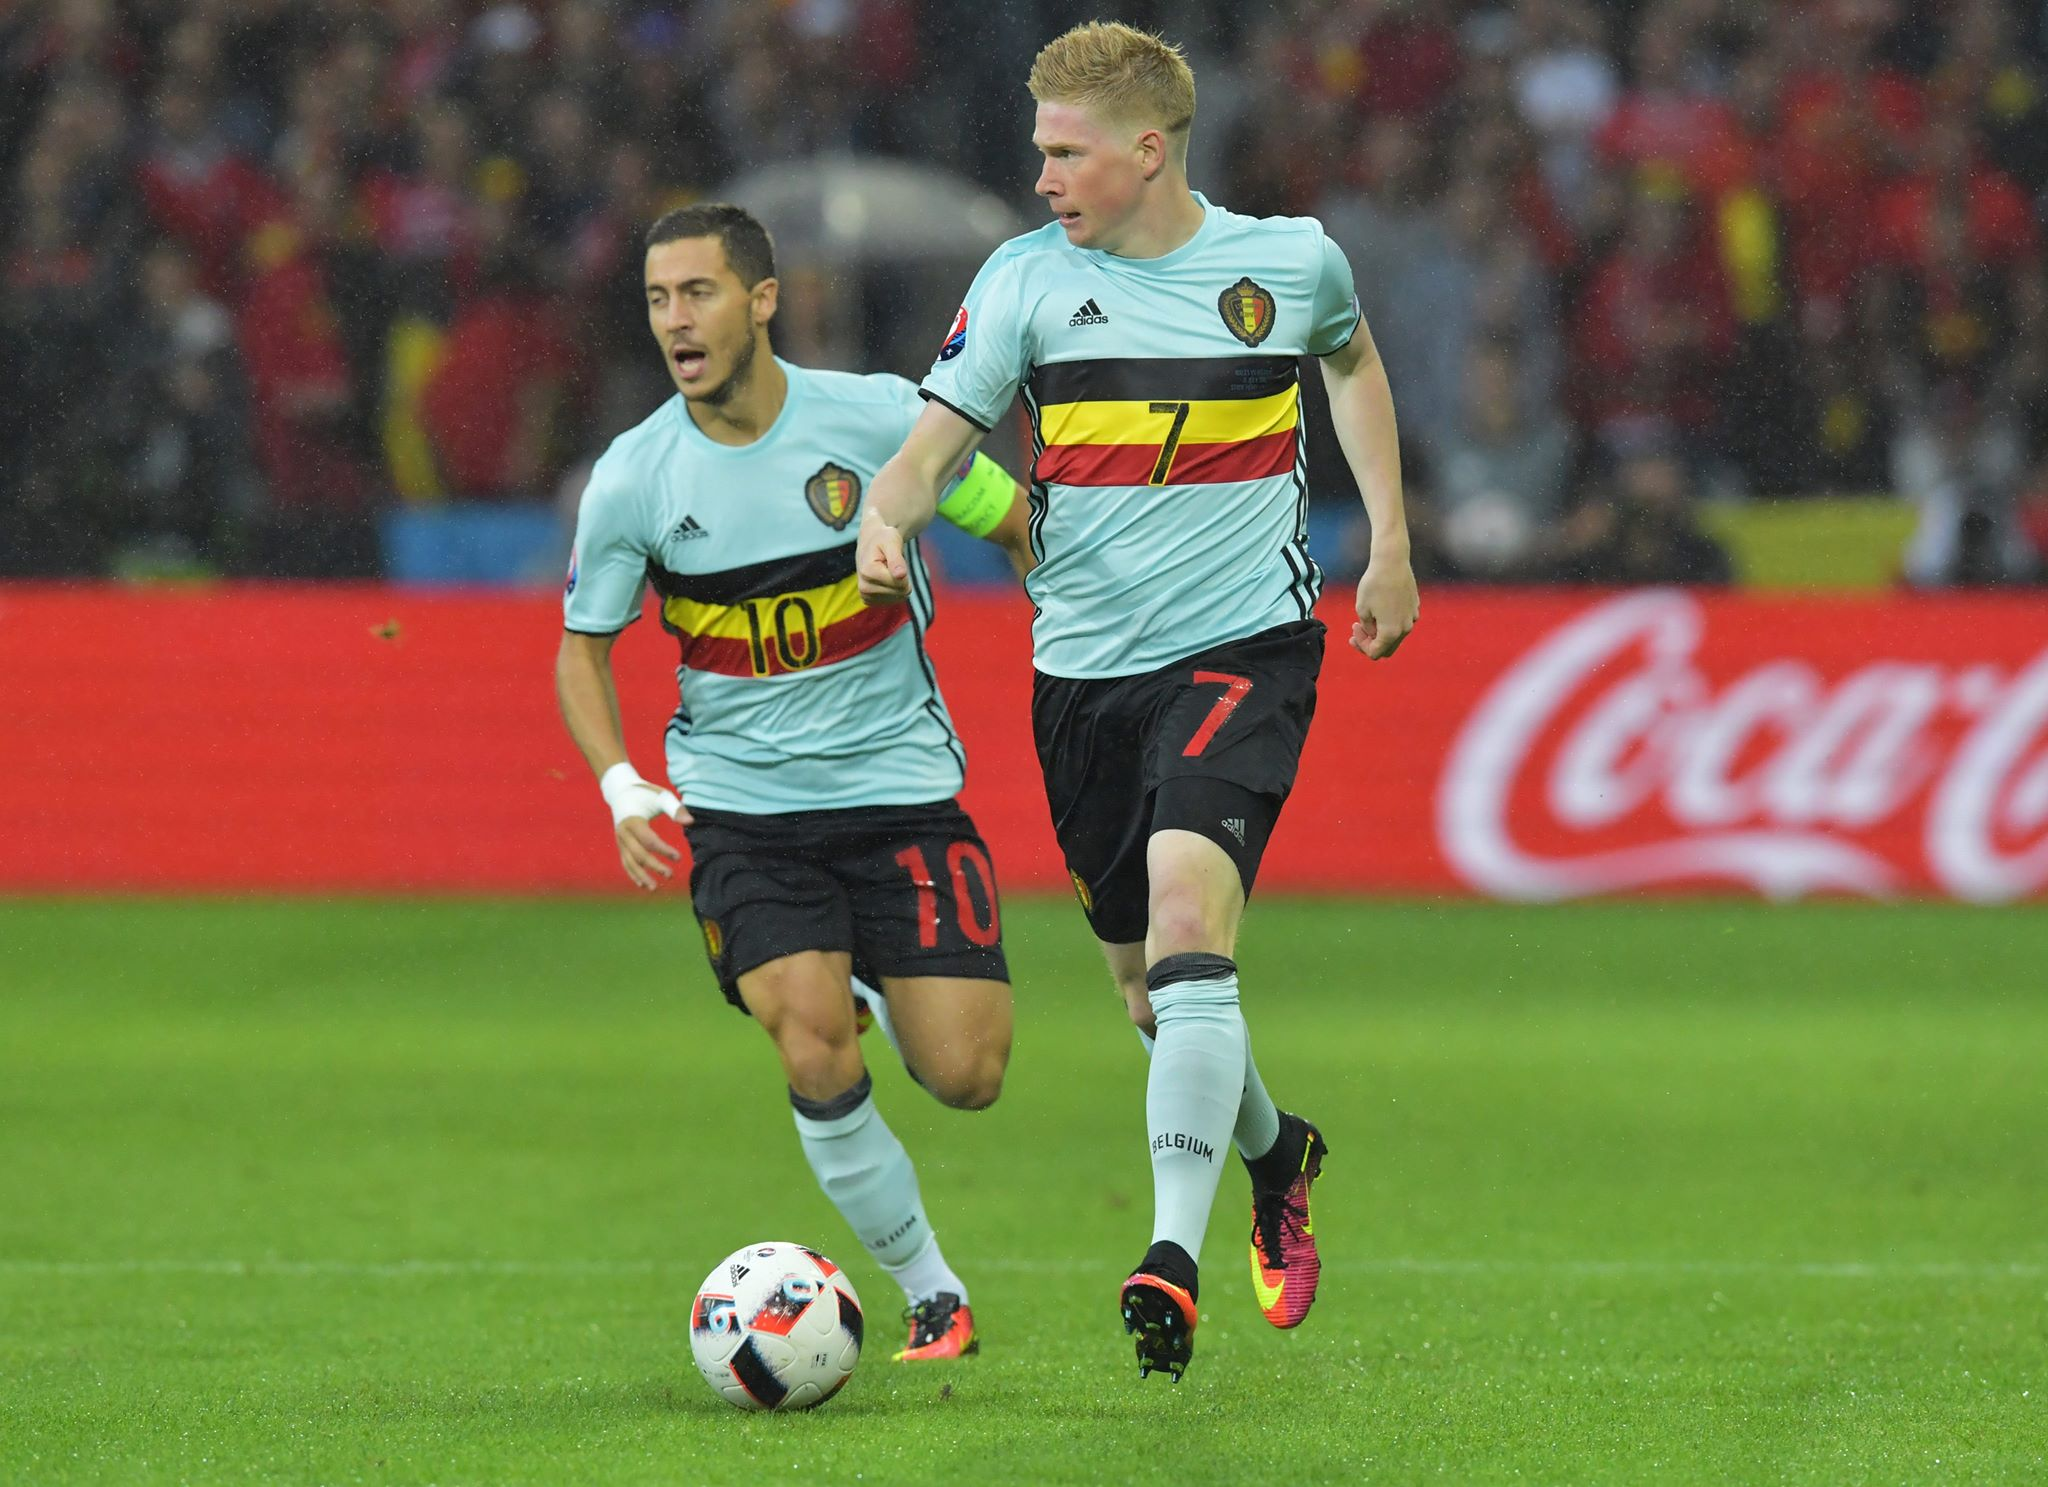 Hazard and De Bruyne in action for Belgium during Euro 2016. Image: PA